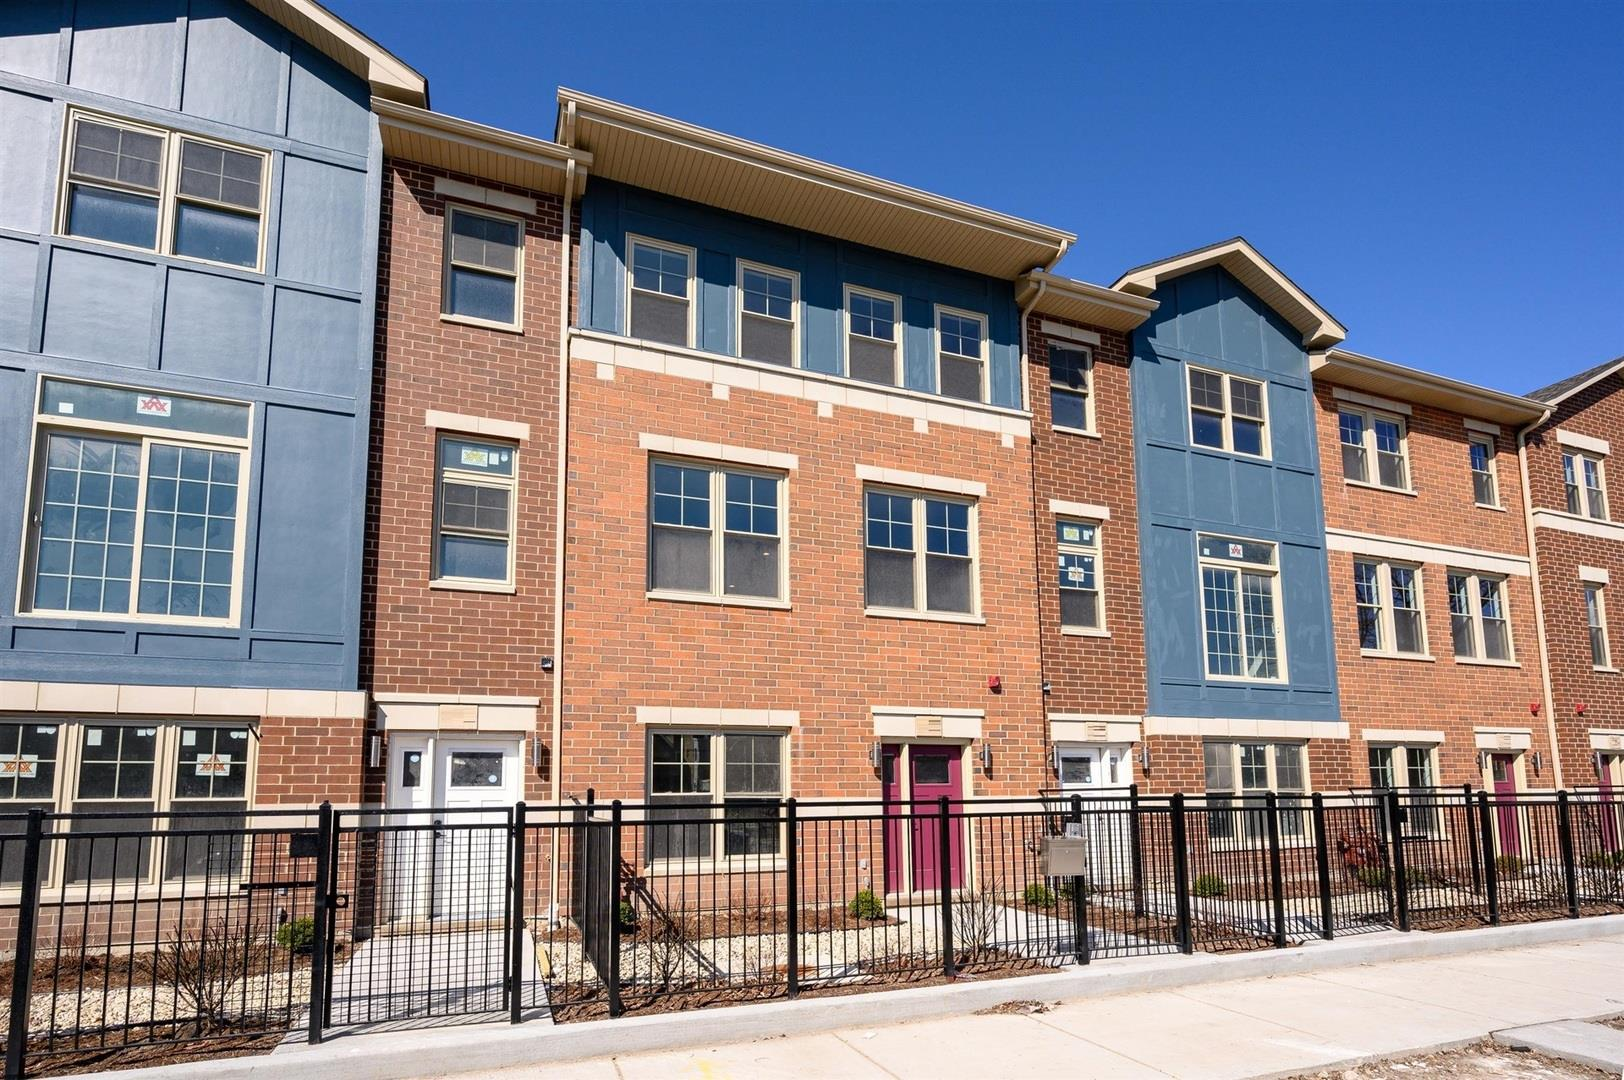 3233 S Stewart Avenue, Chicago, IL 60616 - #: 10842699